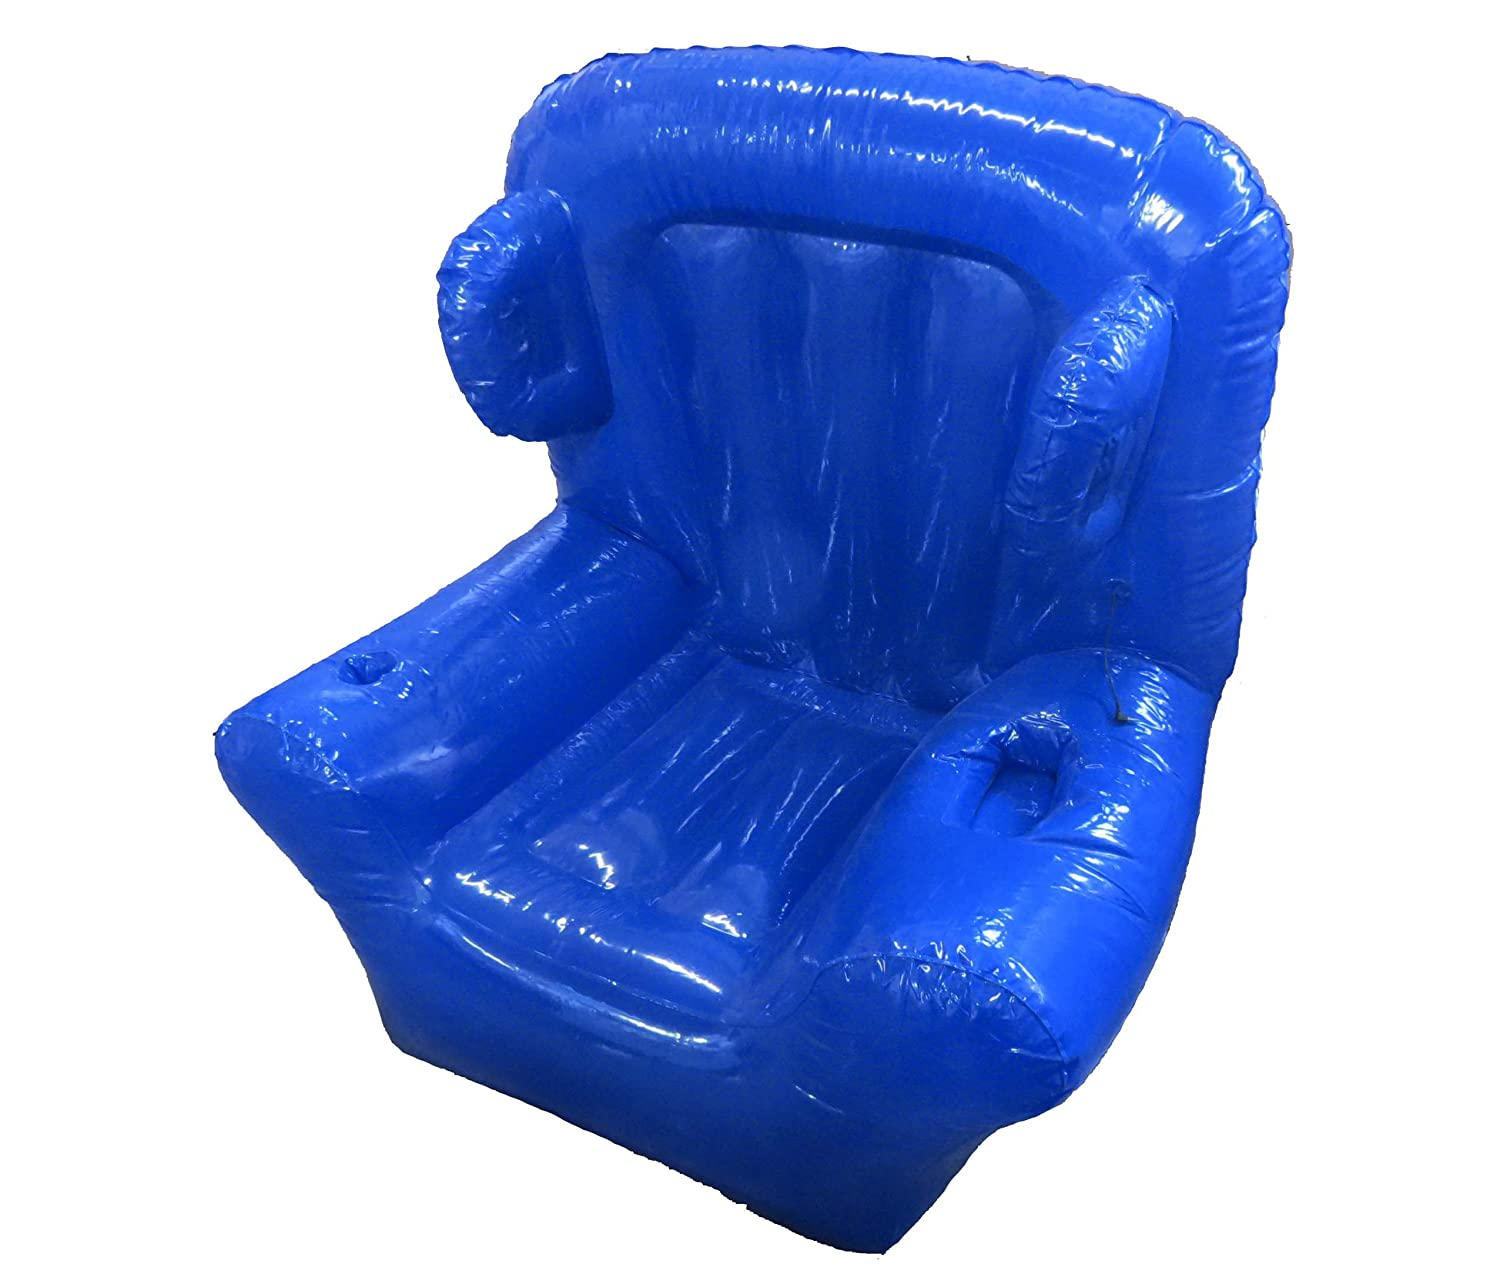 Amazoncom Big Blue Inflatable Chair with IPOD Connection